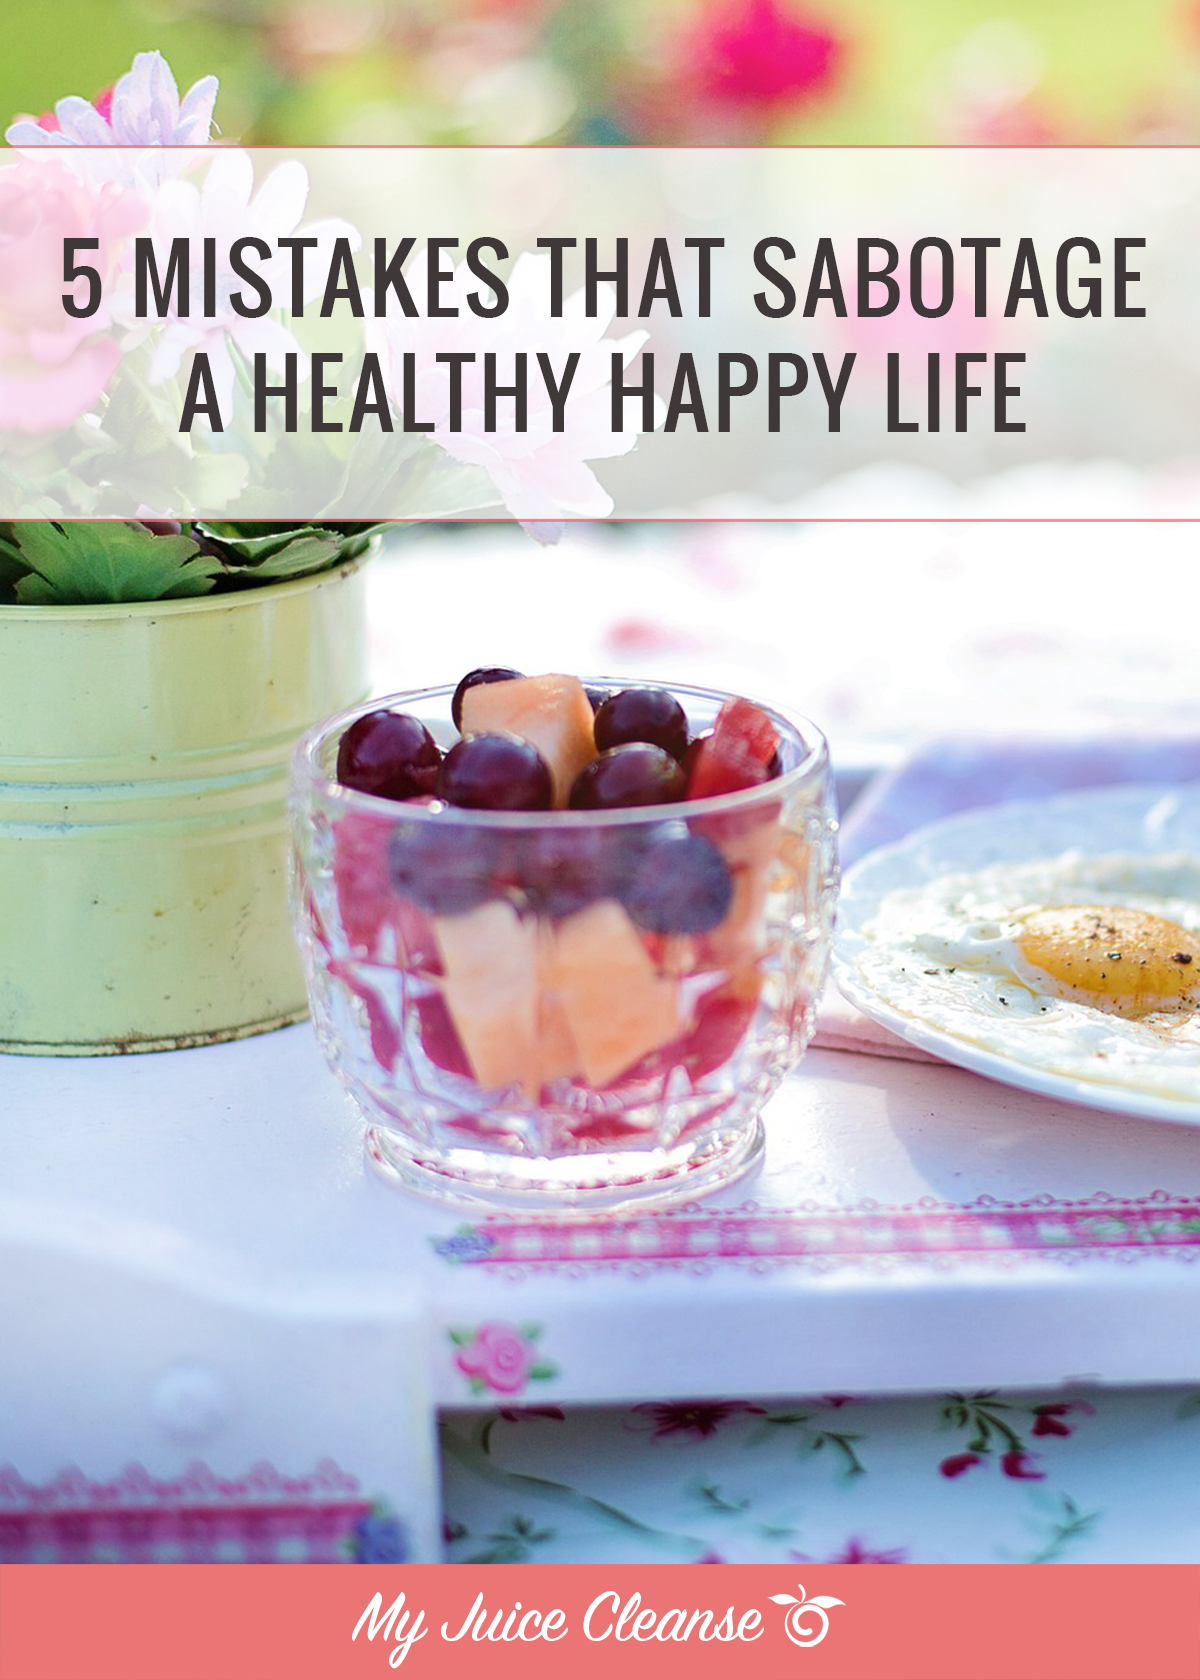 5 Mistakes That Sabotage a Healthy Happy Life